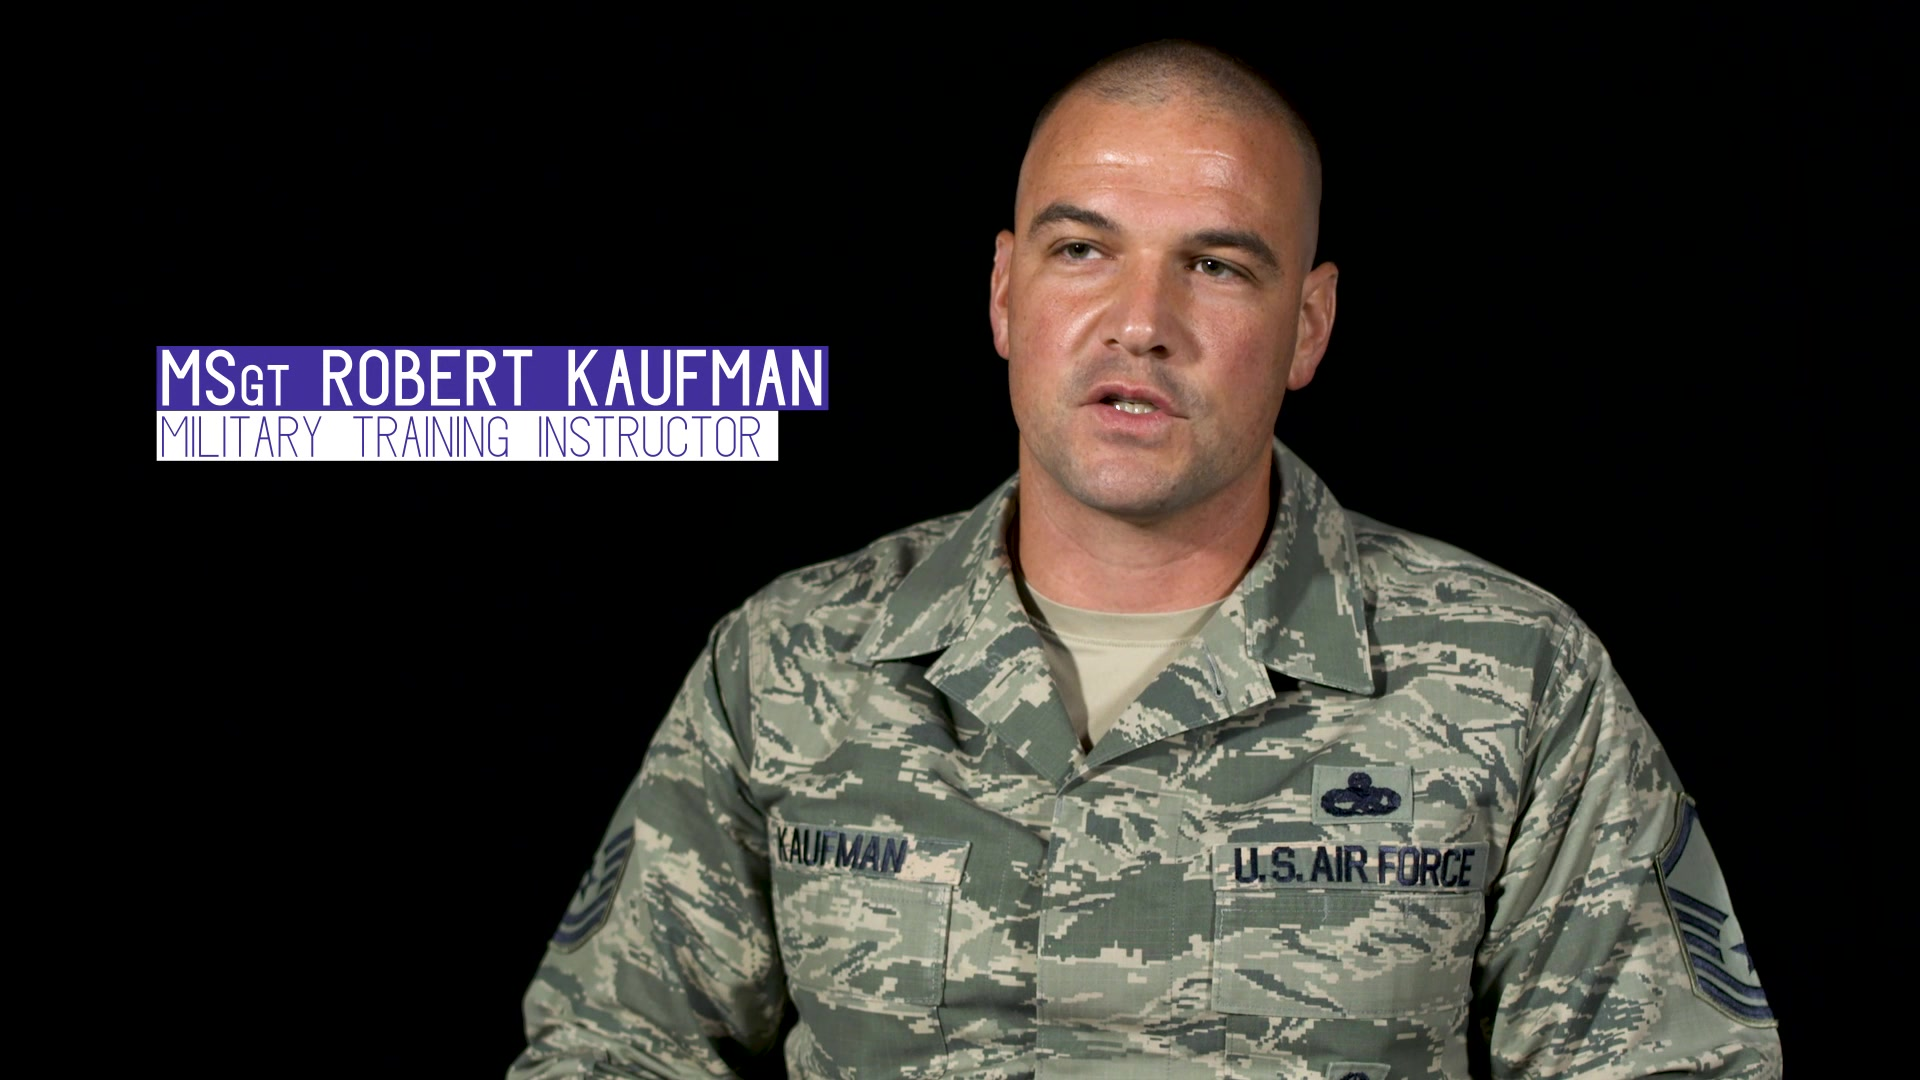 MSgt Robert Kaufman tells us about the changes being made to Air Force Basic Military Training.